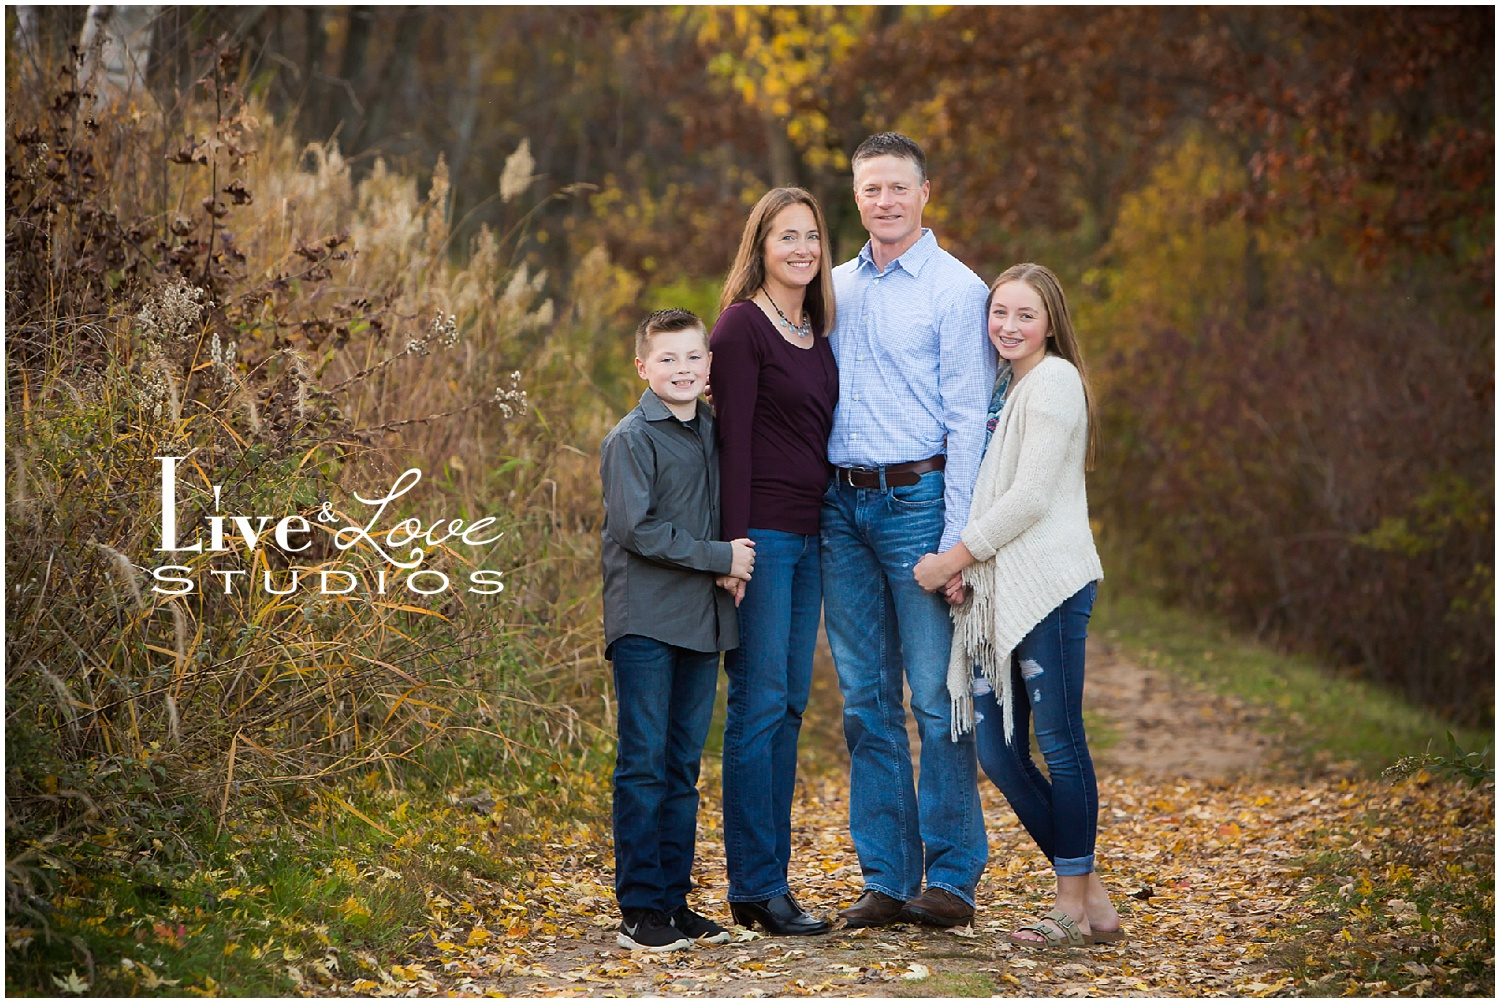 eagan-mn-family-photography_0130.jpg